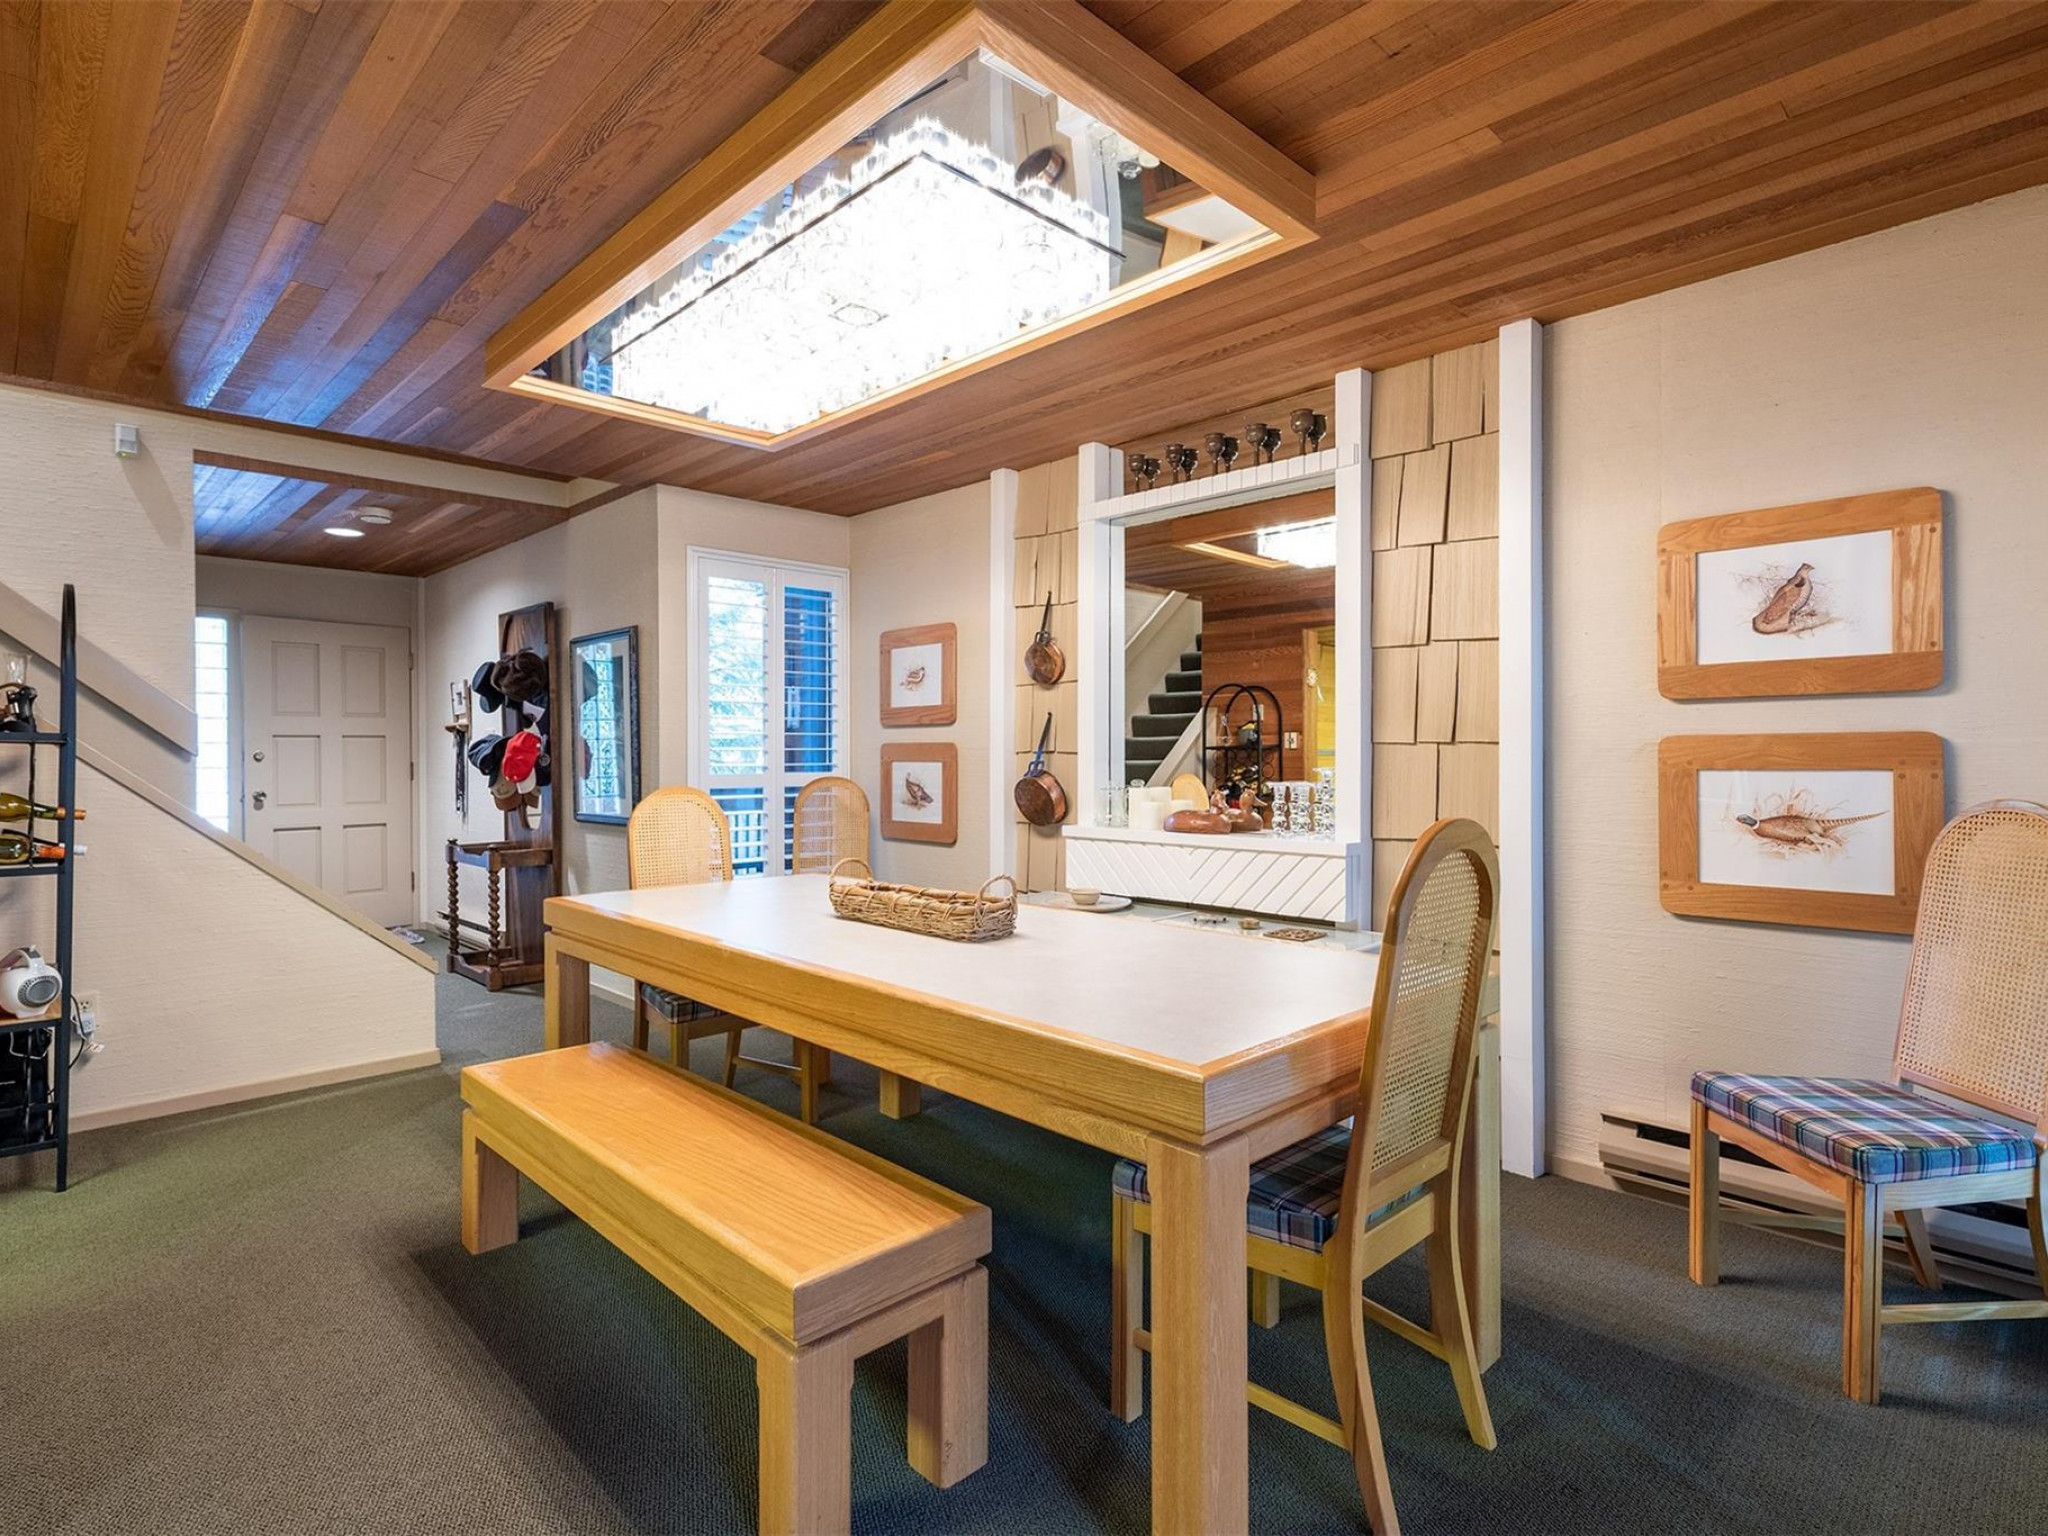 2018 Squaw Valley Crescent image 7